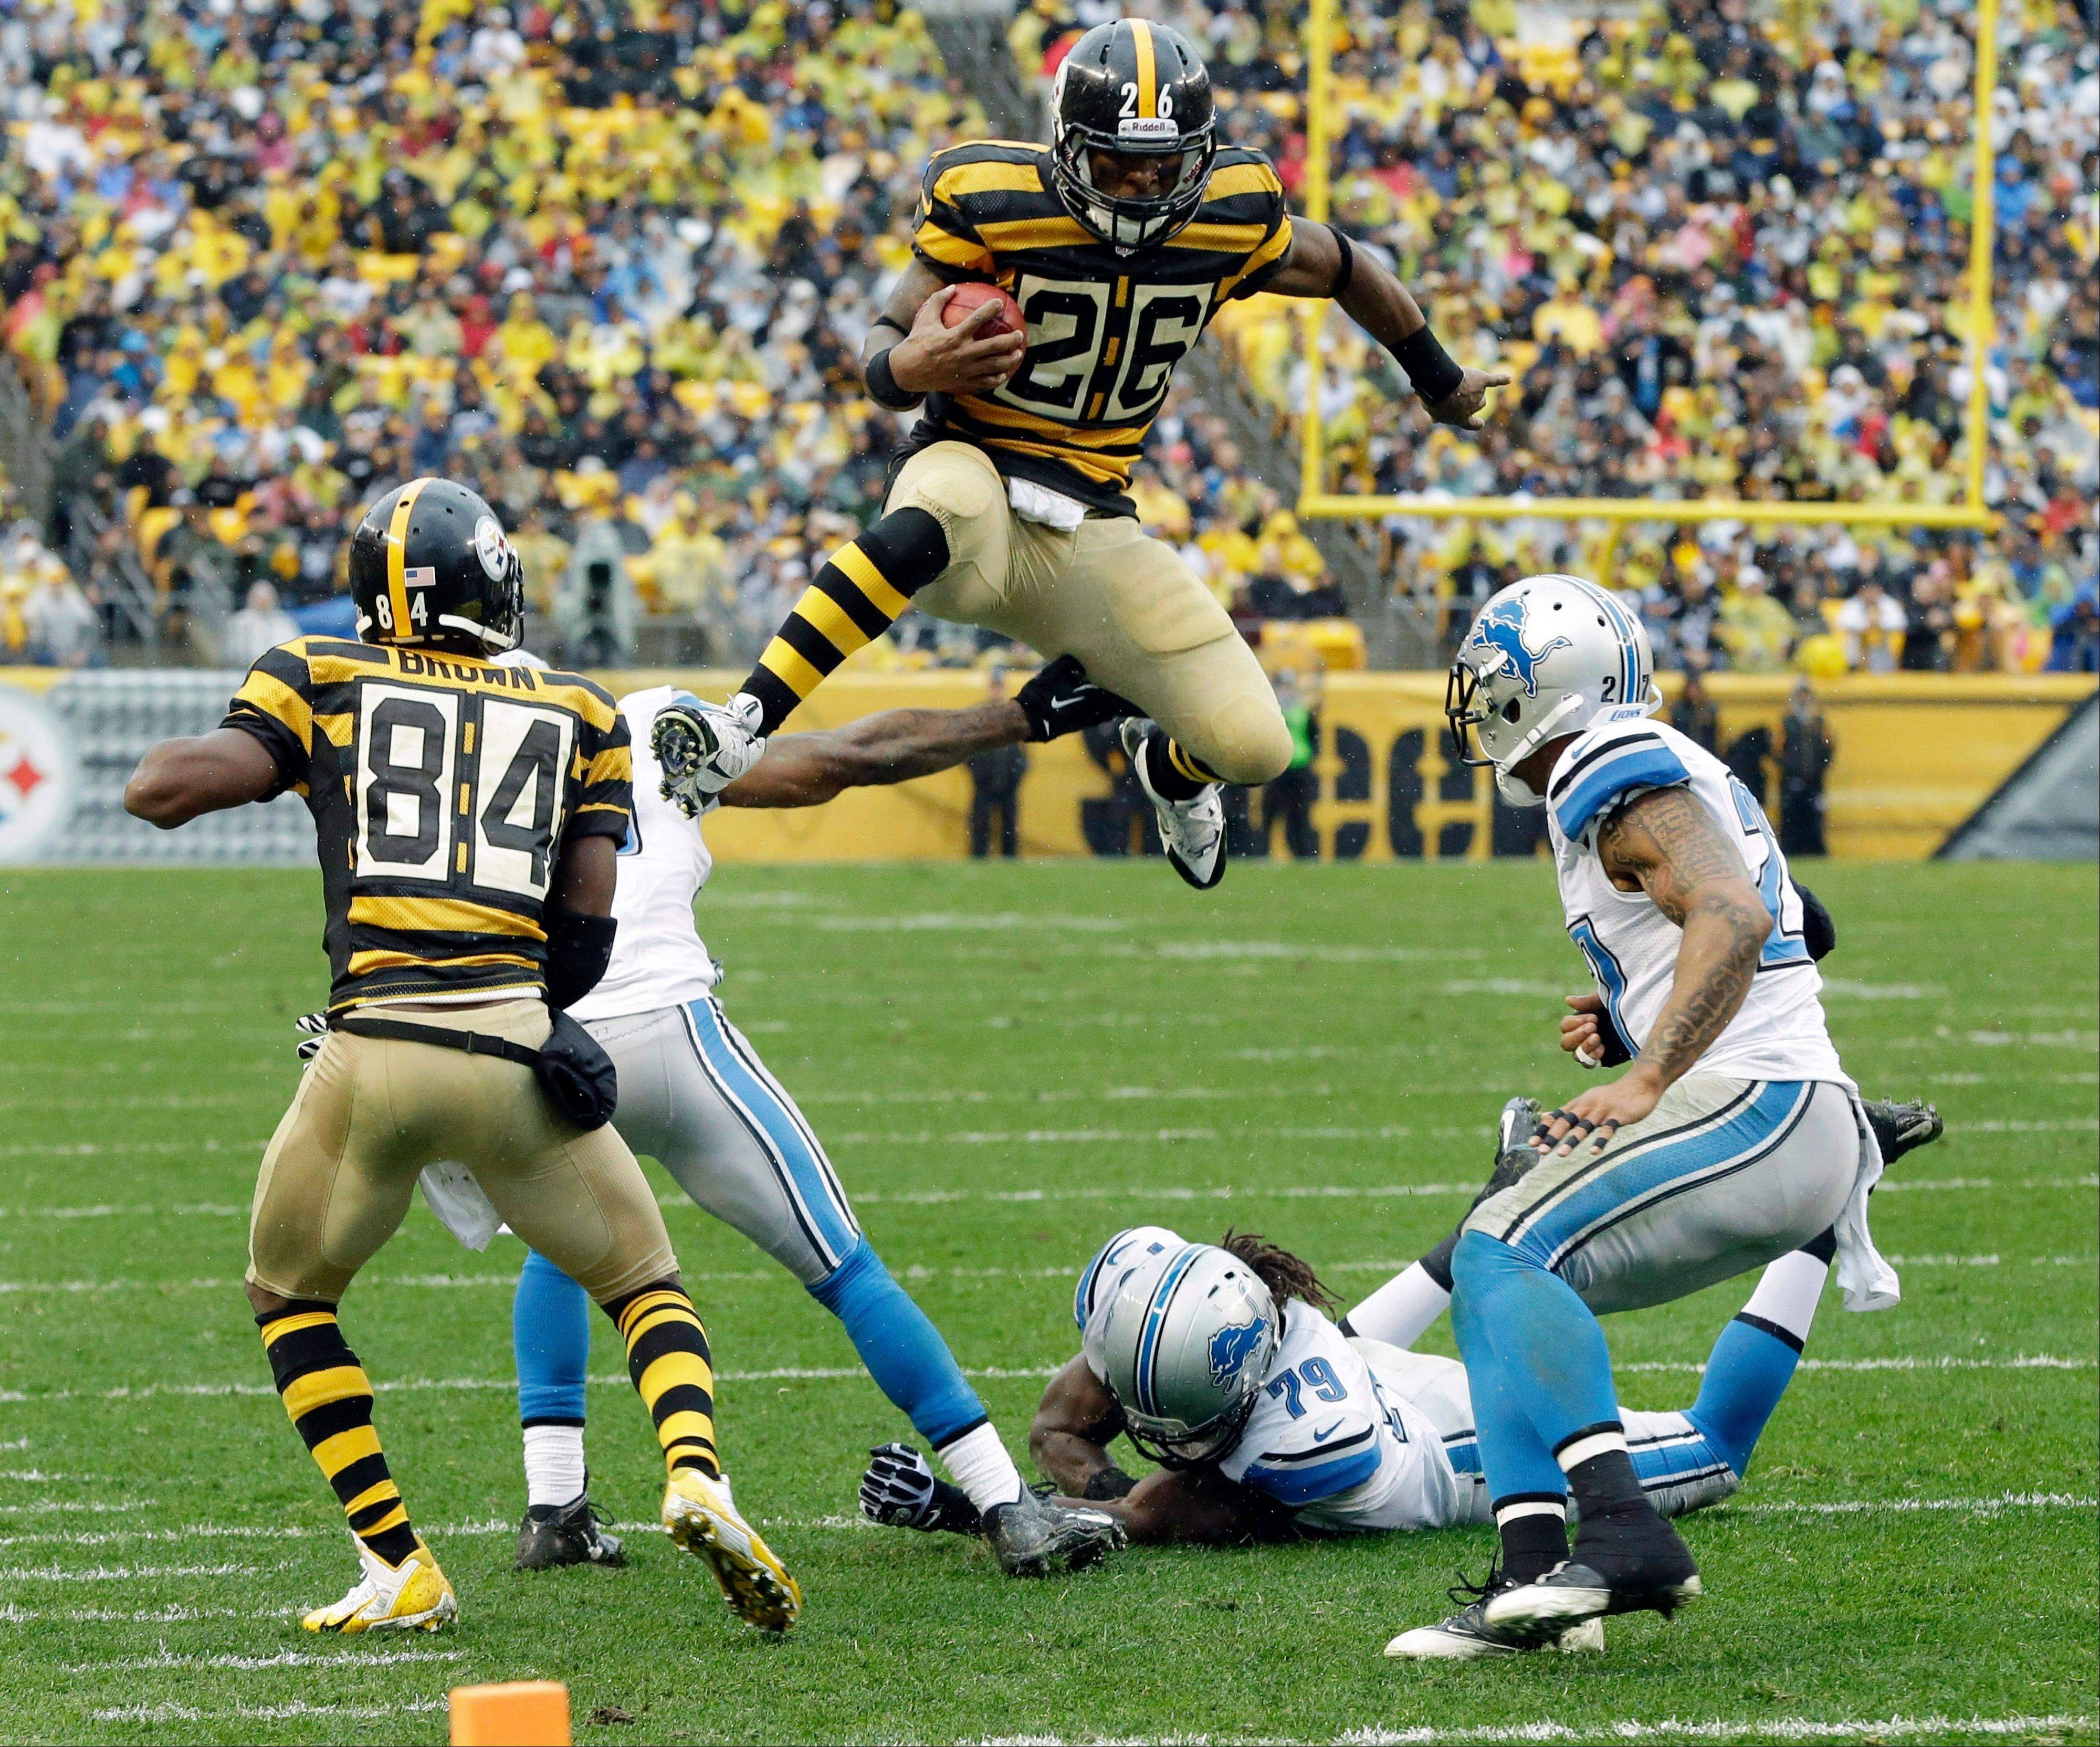 Pittsburgh Steelers running back Le'Veon Bell (26) leaps for more yardage as he tries to evade Detroit Lions strong safety Glover Quin (27) and the defense in the first half of an NFL football game in Pittsburgh, Sunday, Nov. 17, 2013.